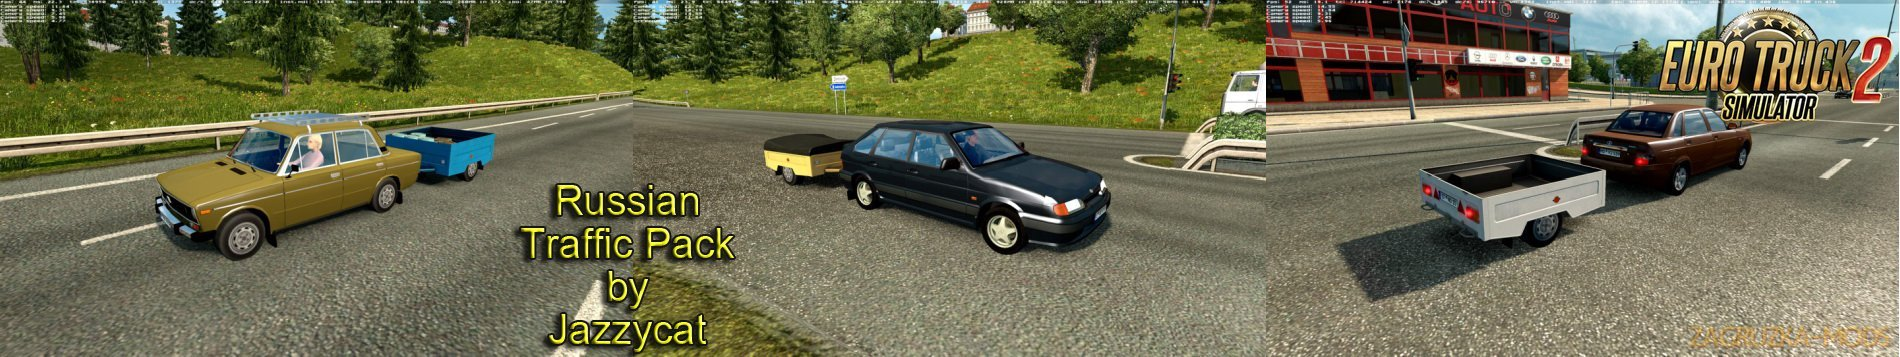 Russian Traffic Pack v2.4 by Jazzycat